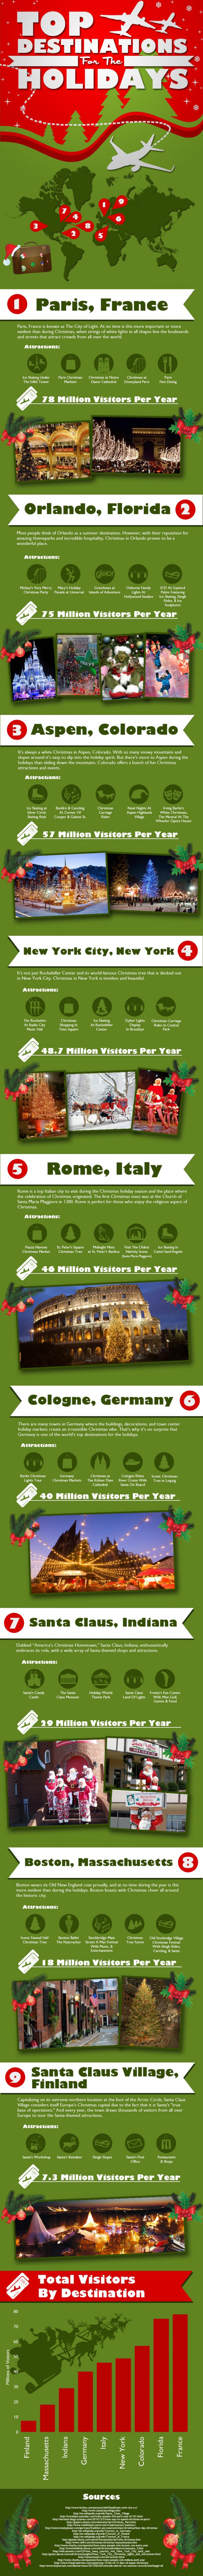 top destinations for the holidays 50c0c3cfaa45b w587 Top Destinations for the Holidays